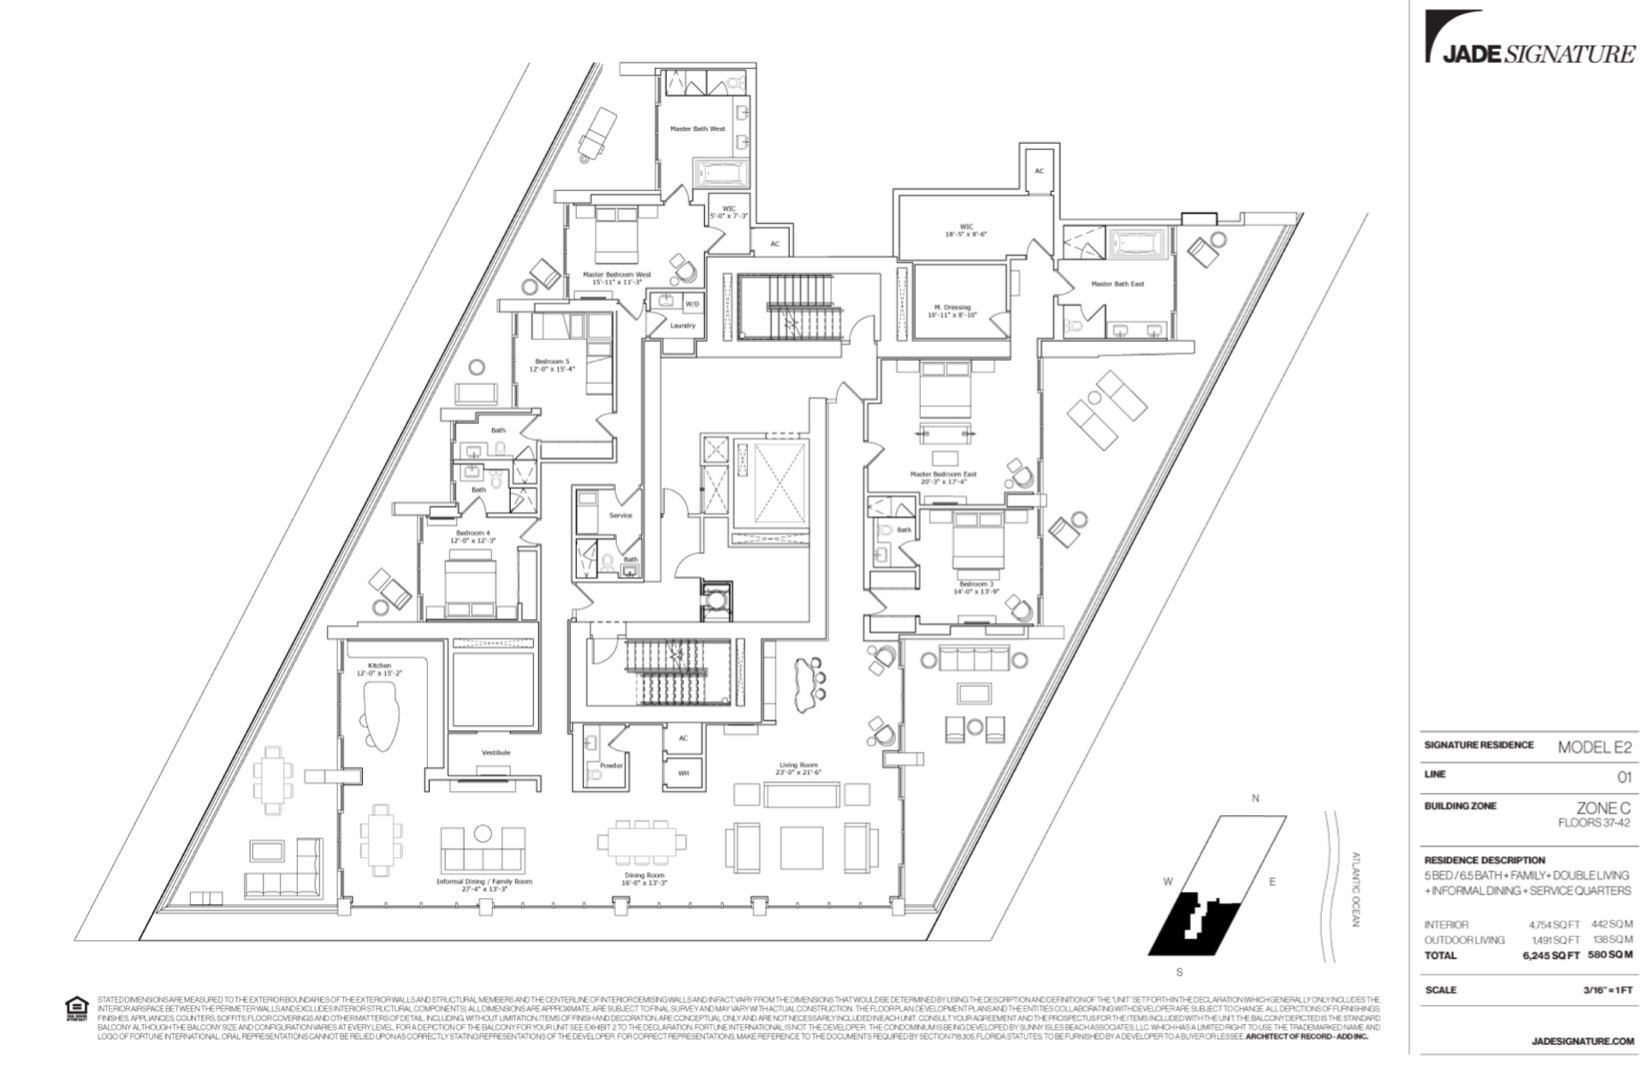 Floor plan image E2 - 5/6.5/Family/DoubleLiving/InformalDining/Service  - 4754 sqft image